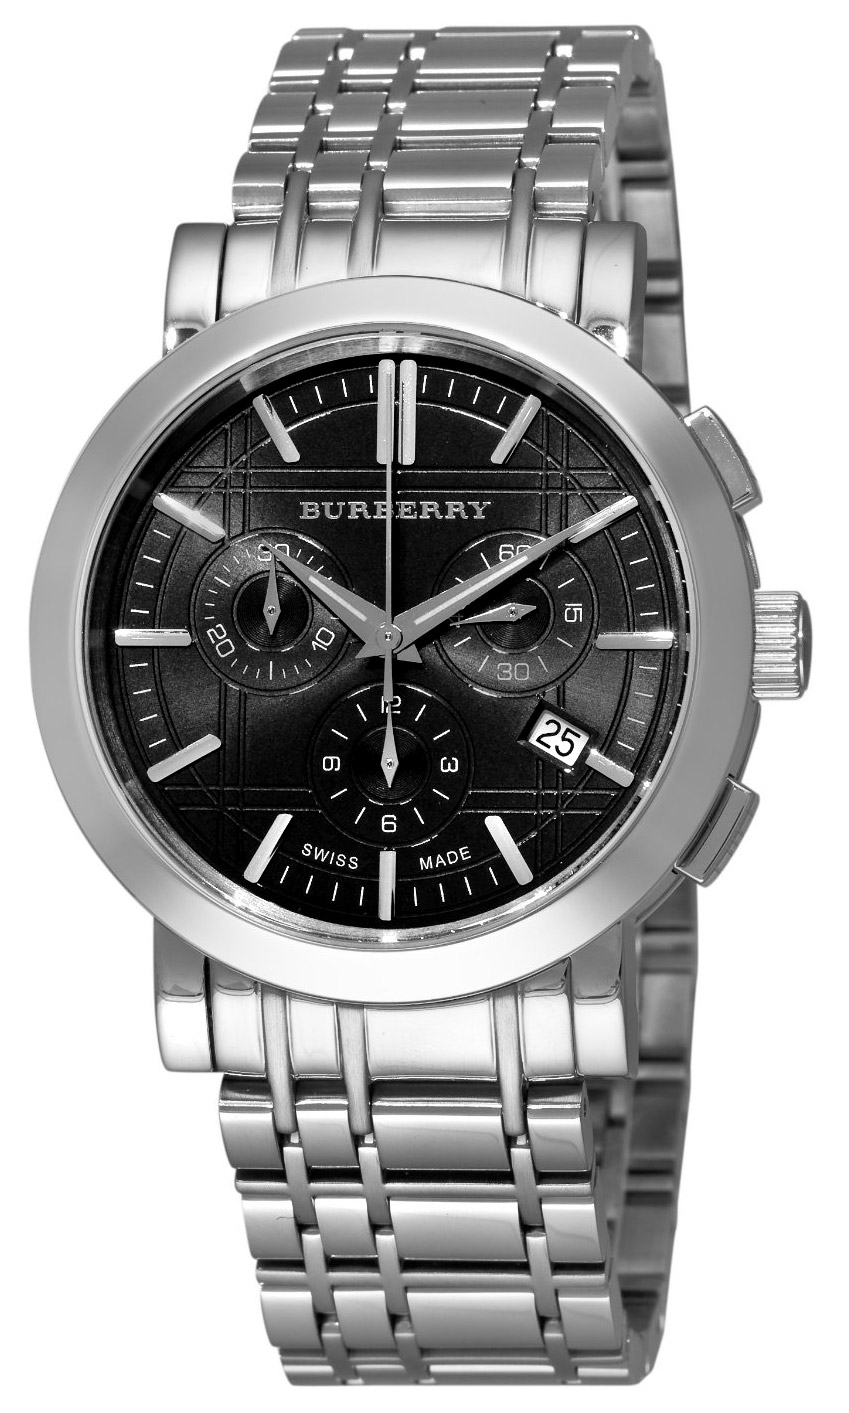 burberry heritage chronograph men s watch model bu1360 burberry heritage chronograph men s watch